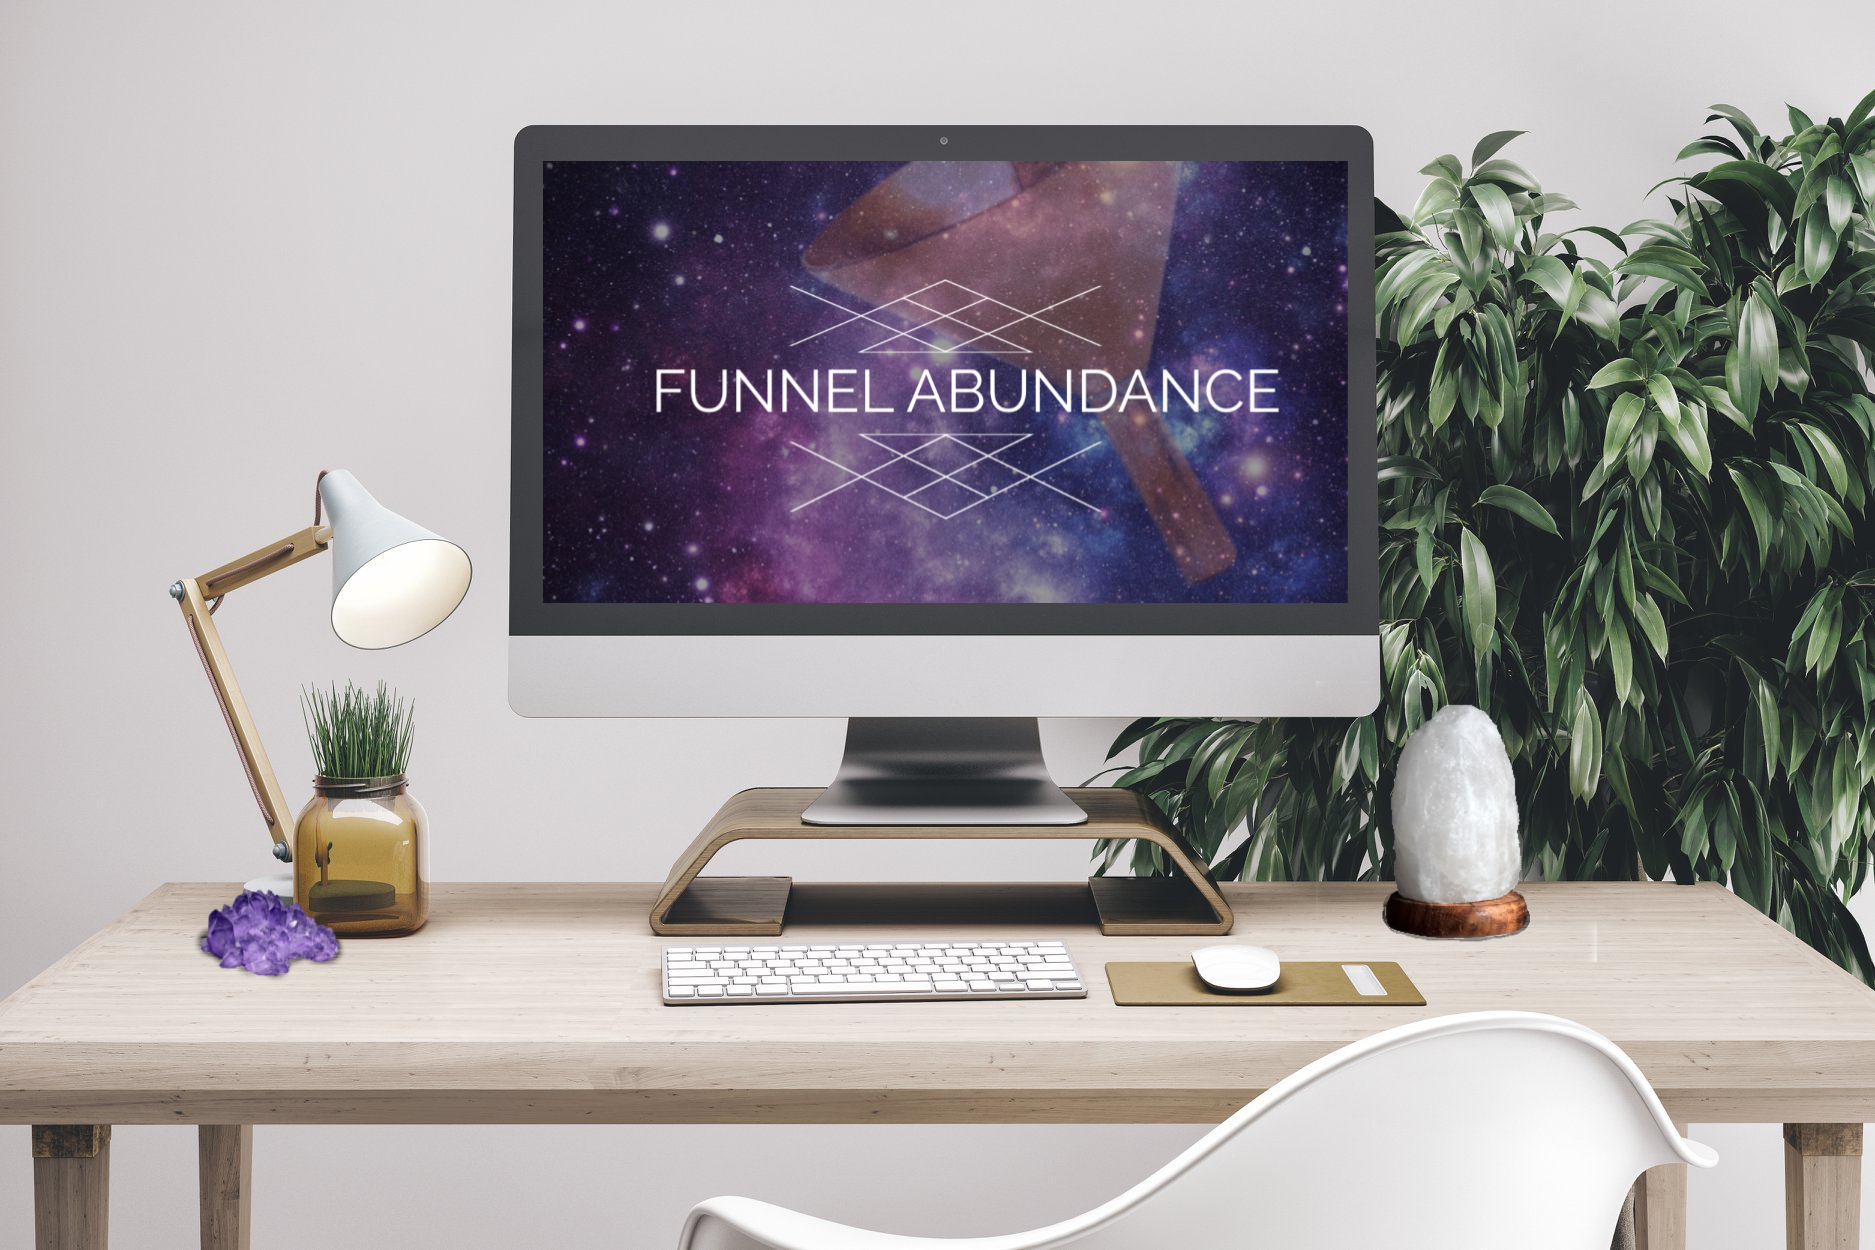 funnelabundance sales funnel programming package to increase revenue and make more money